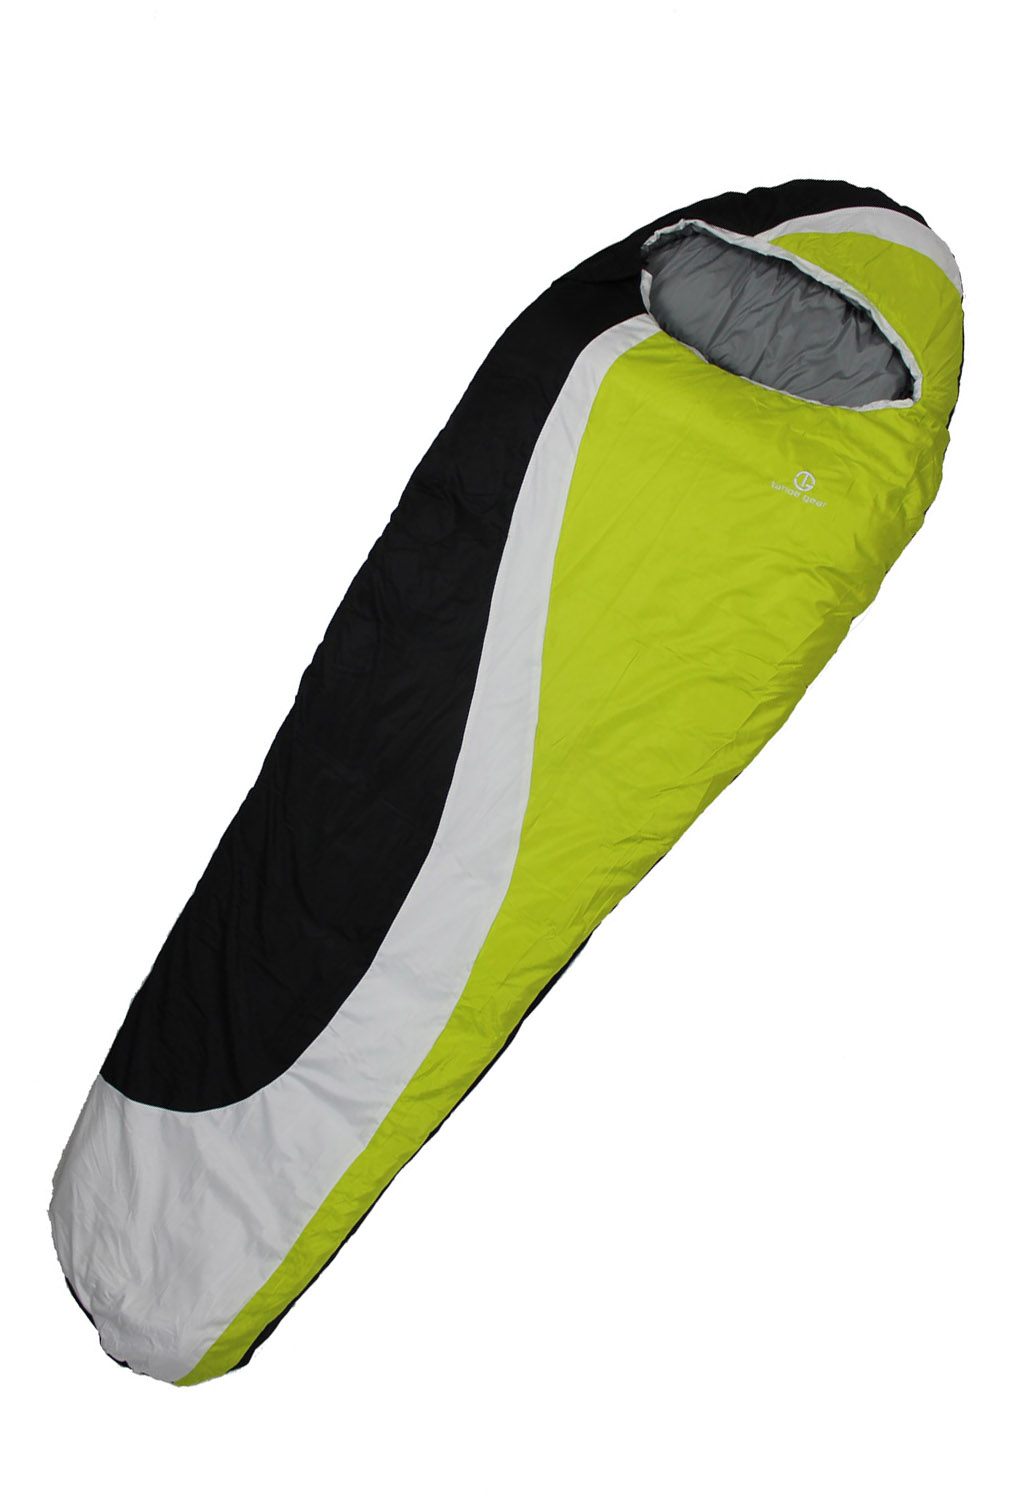 Tahoe Gear Island Peak 200 Sleeping Bag